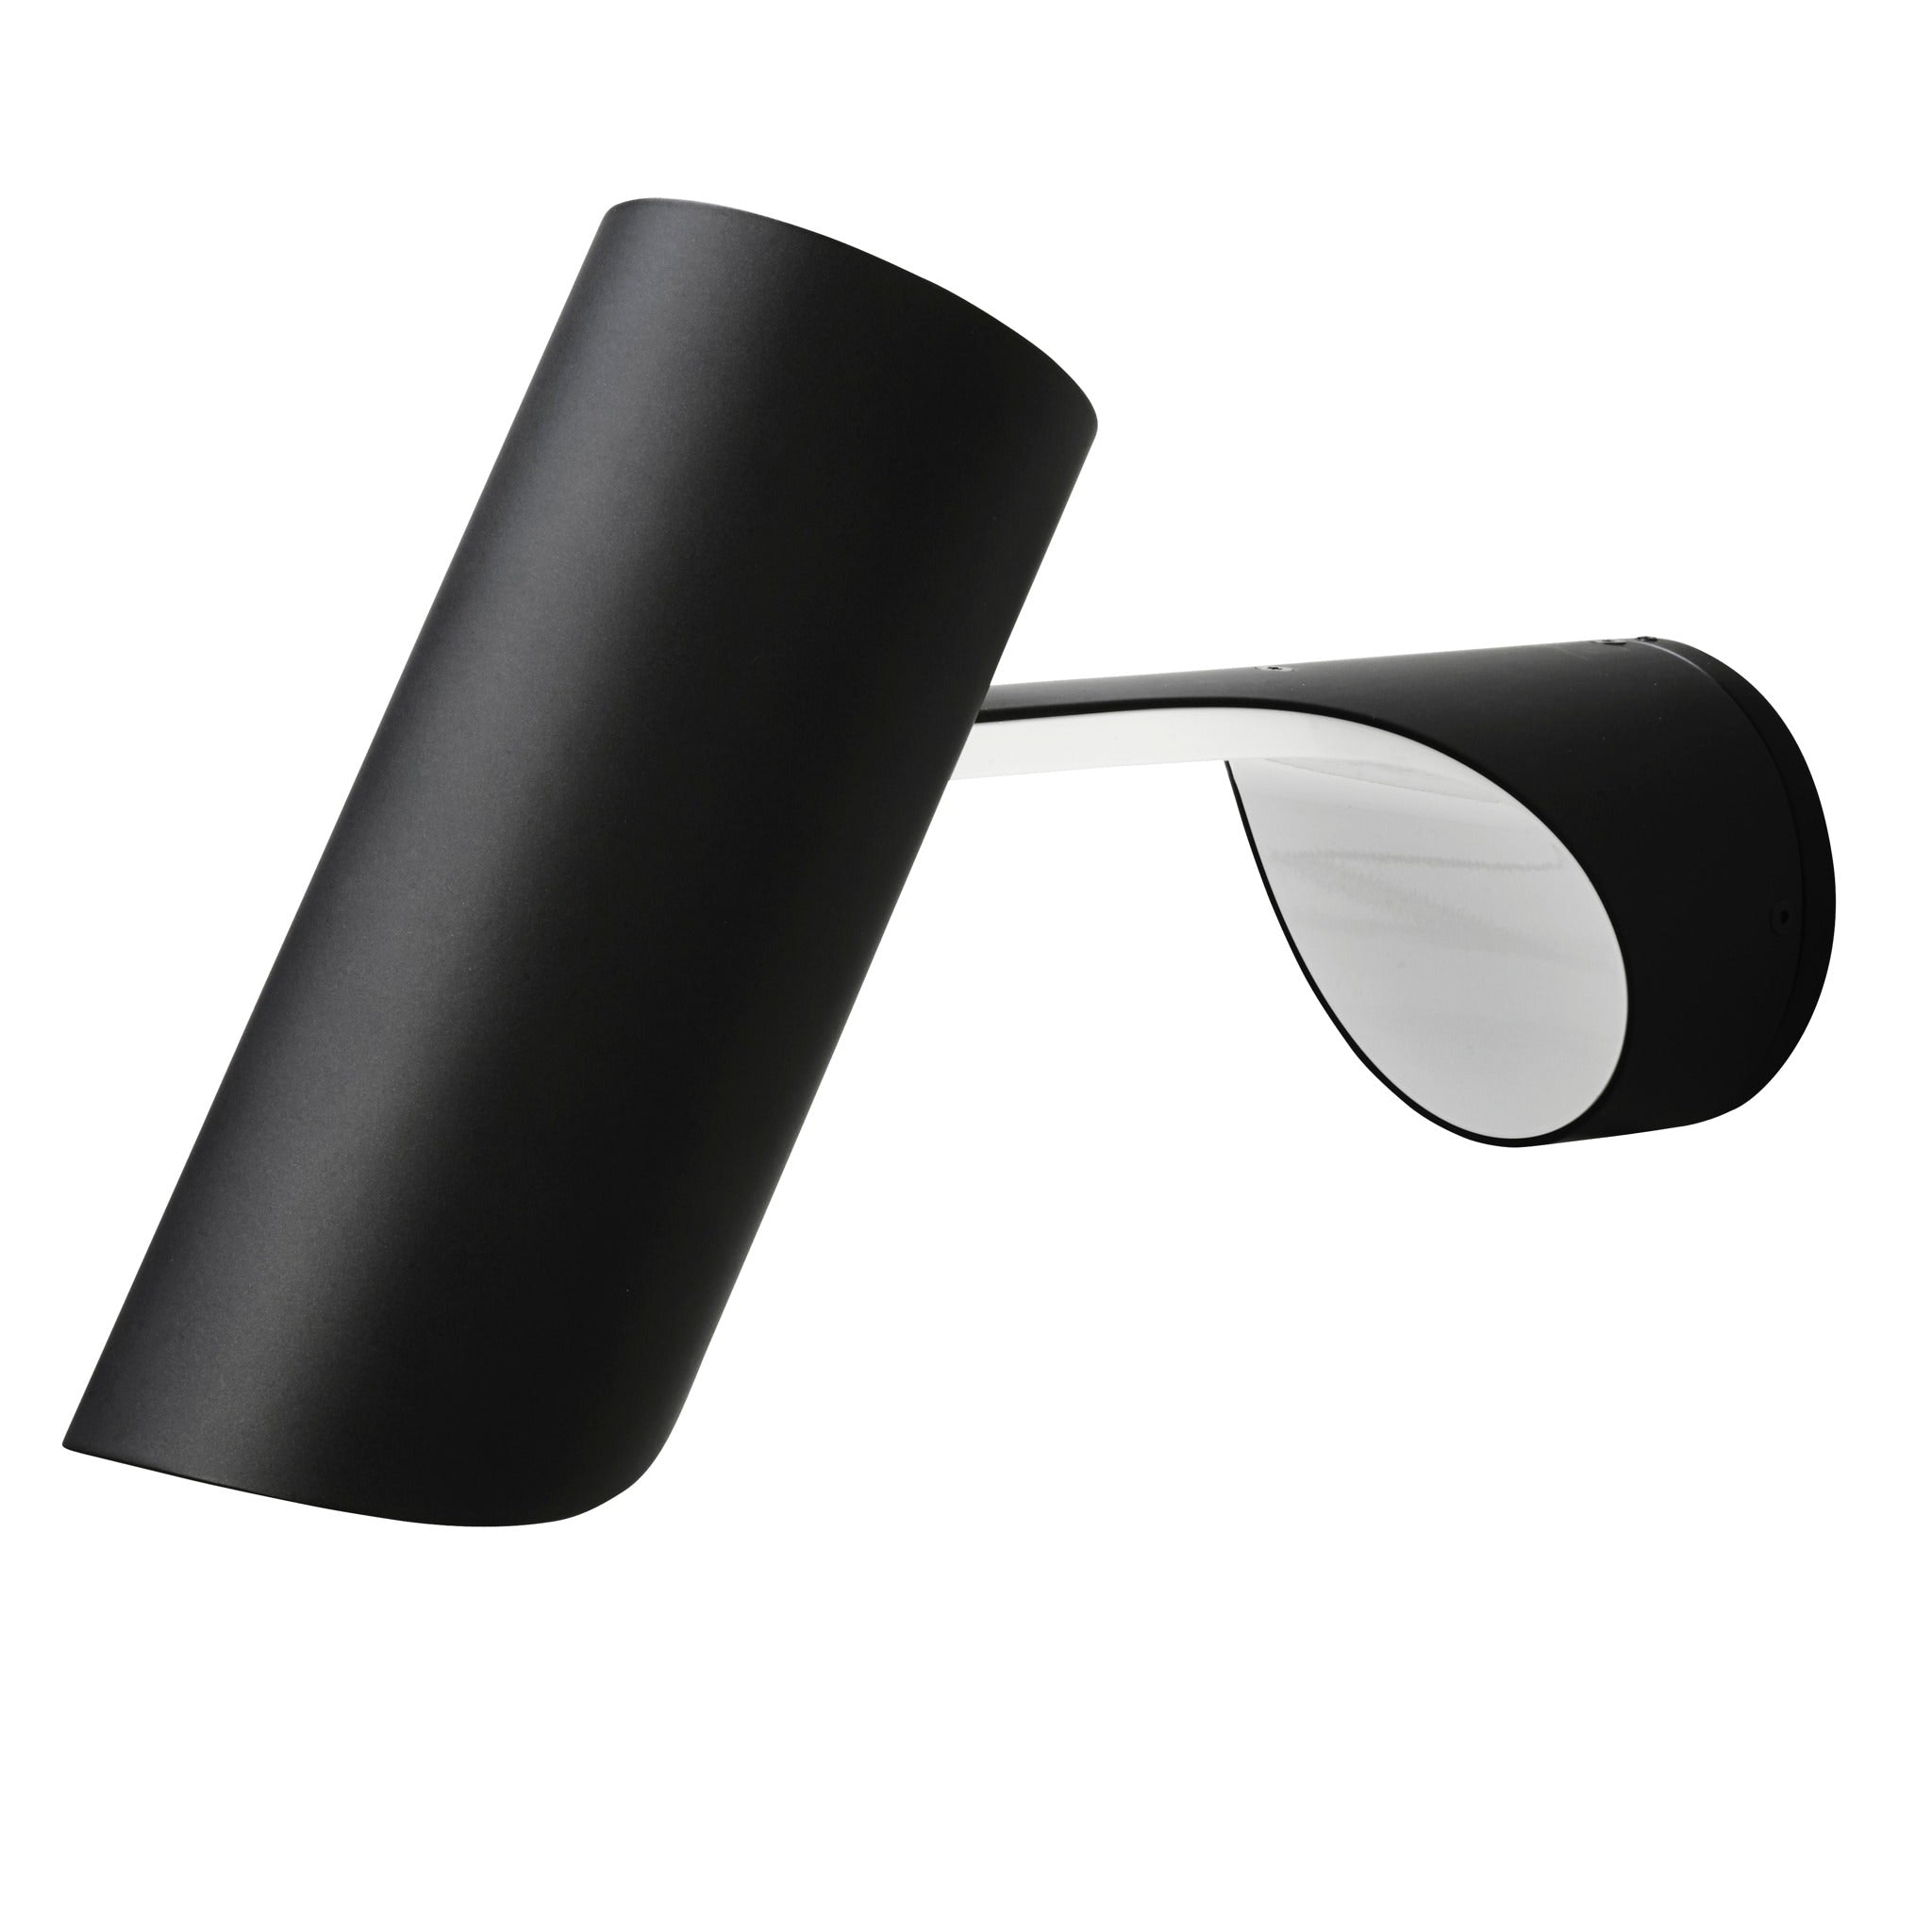 Mutatio Wall Lamp by Le Klint